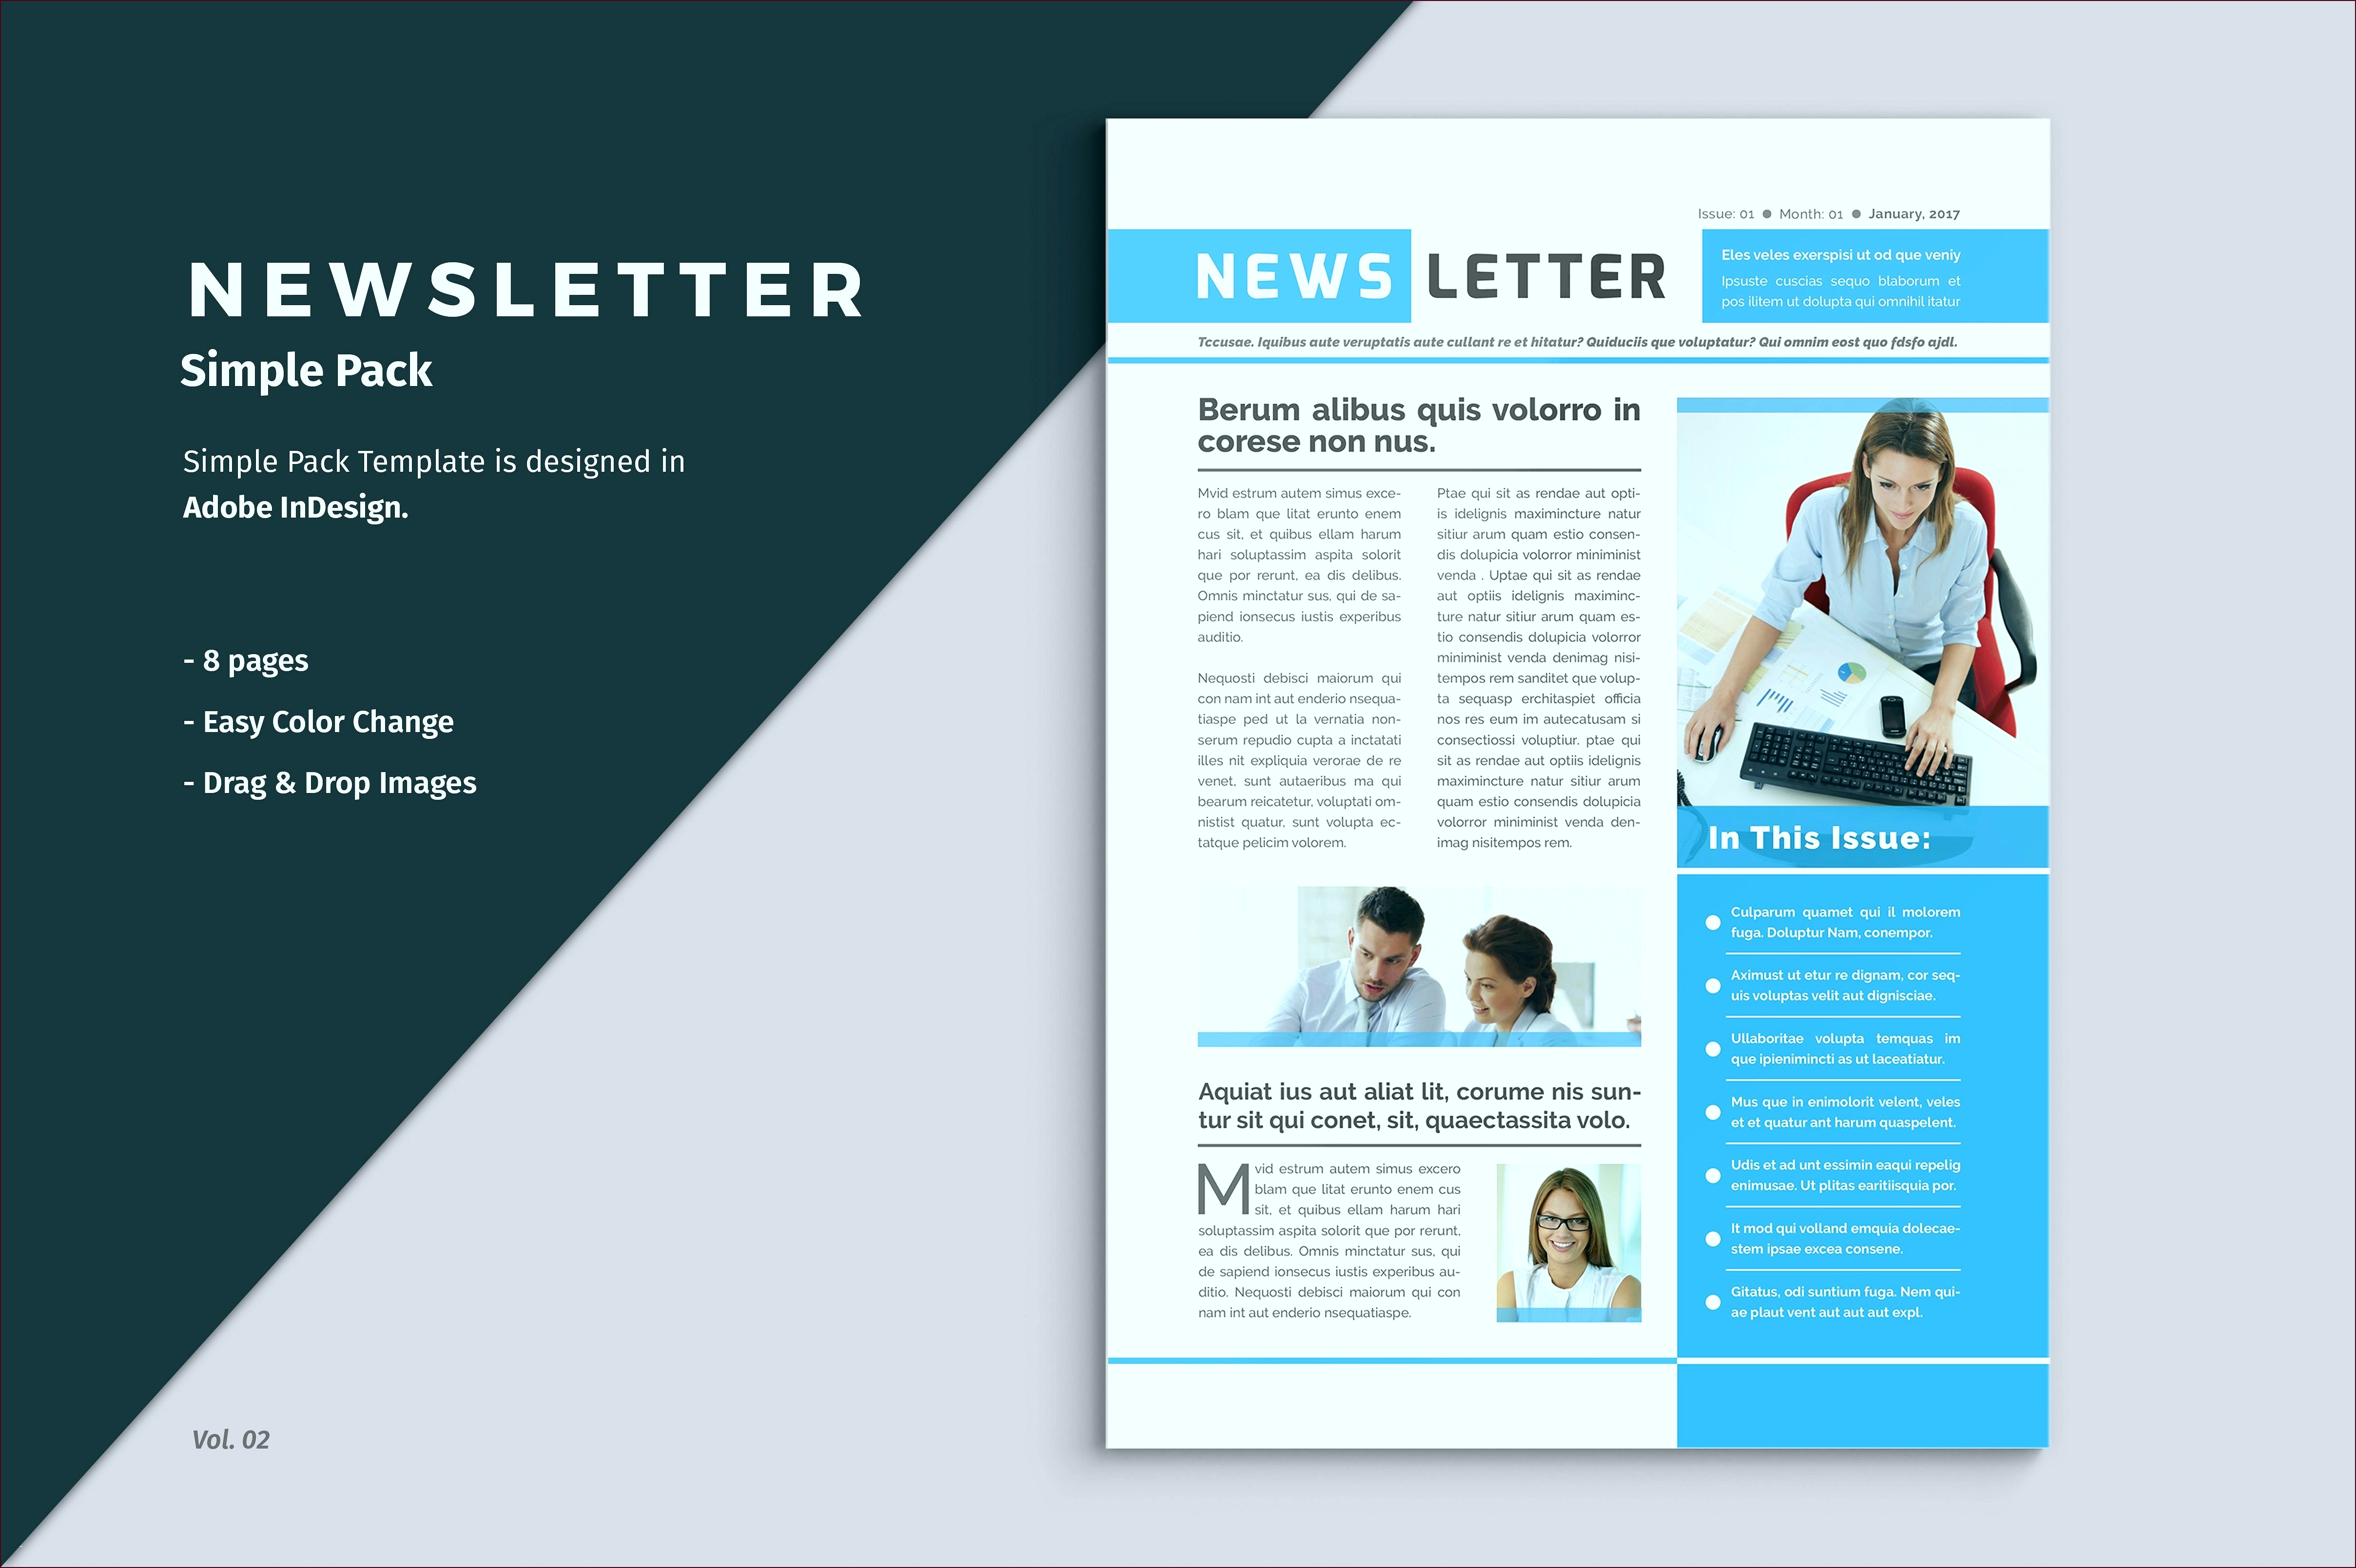 Free Brochure Templates for Mac Awesome Newsletter Template Brochure Templates Creative Market Printable pqrtu